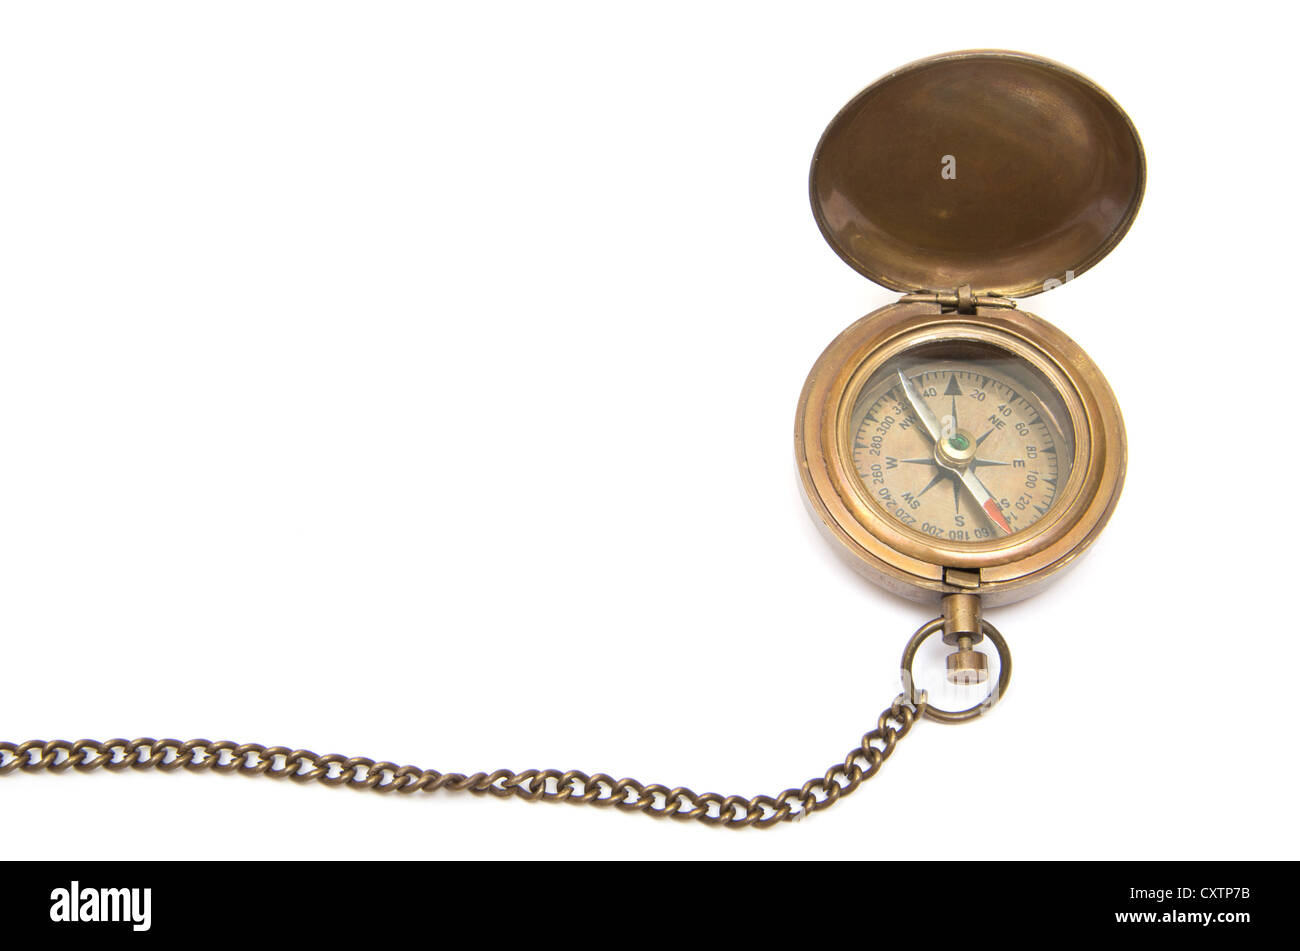 Vintage compass isolated on white background - Stock Image